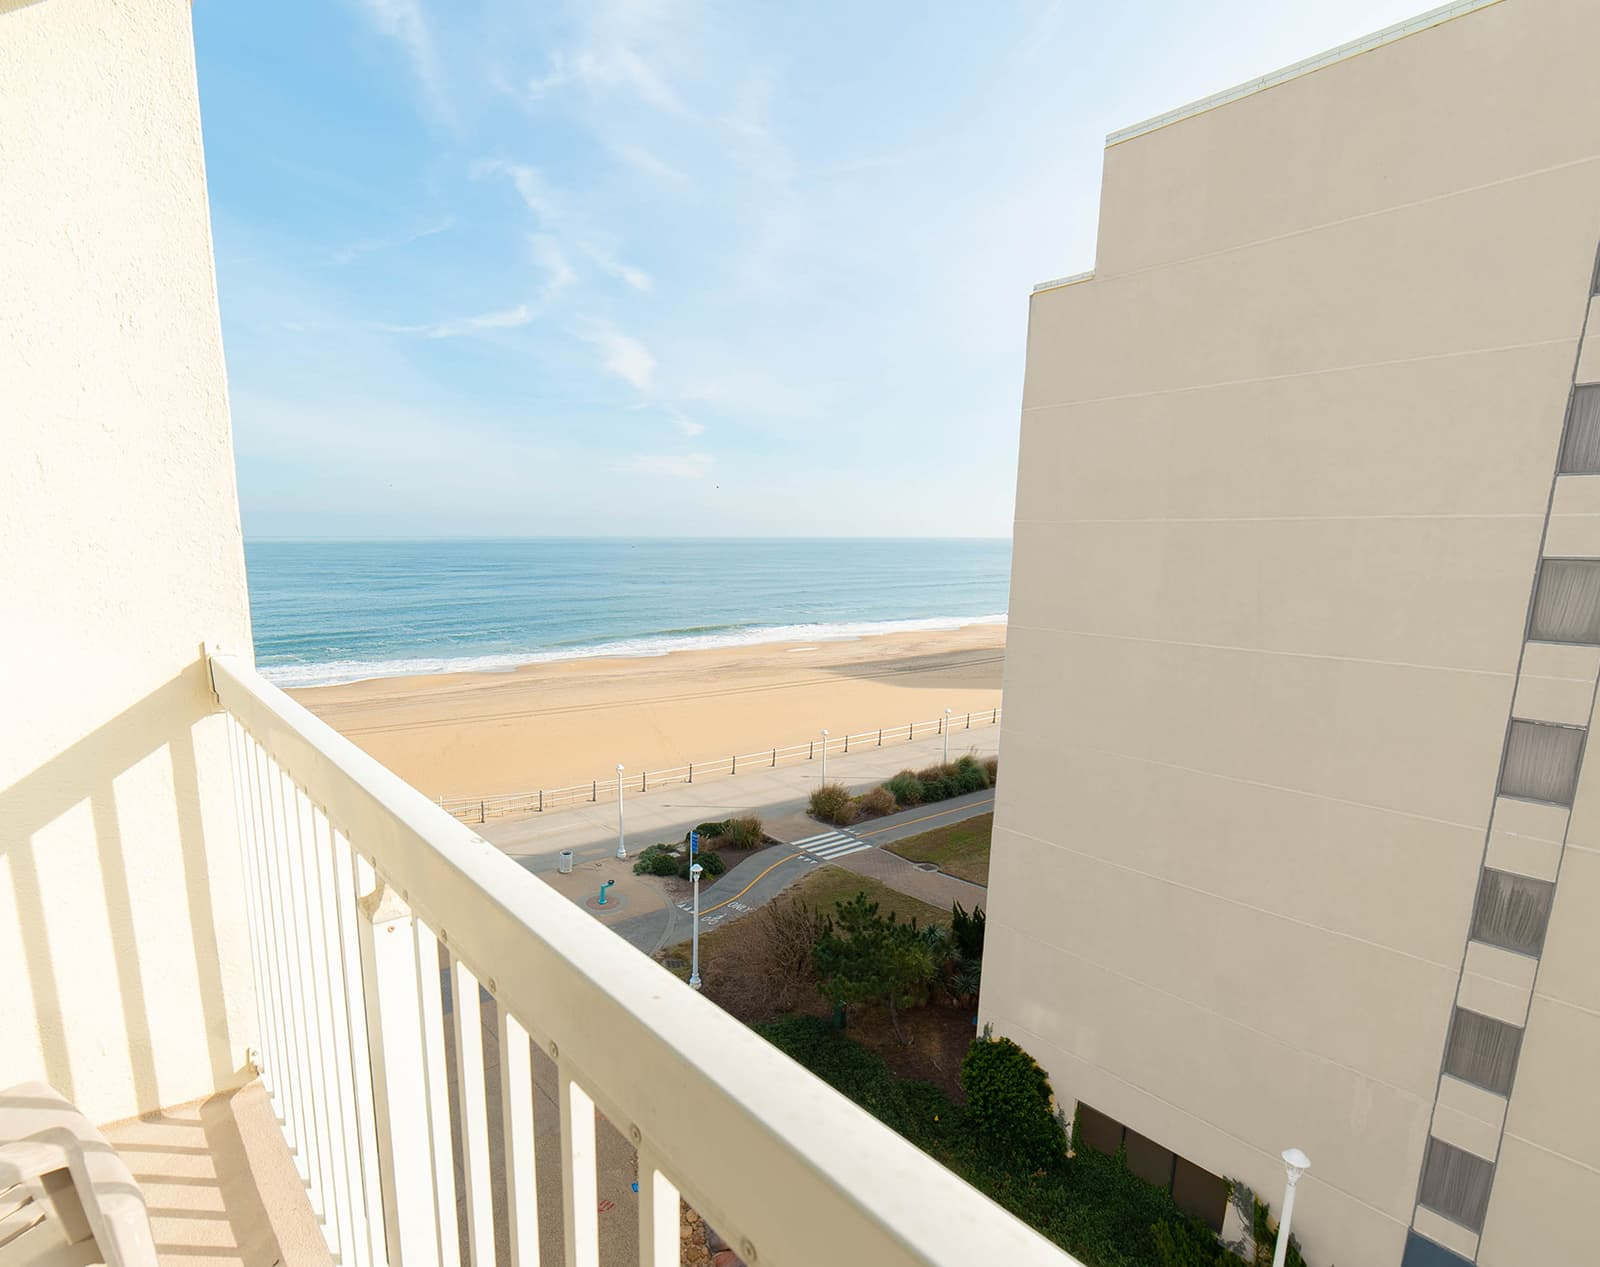 Partial Oceanview Single Room Balcony View